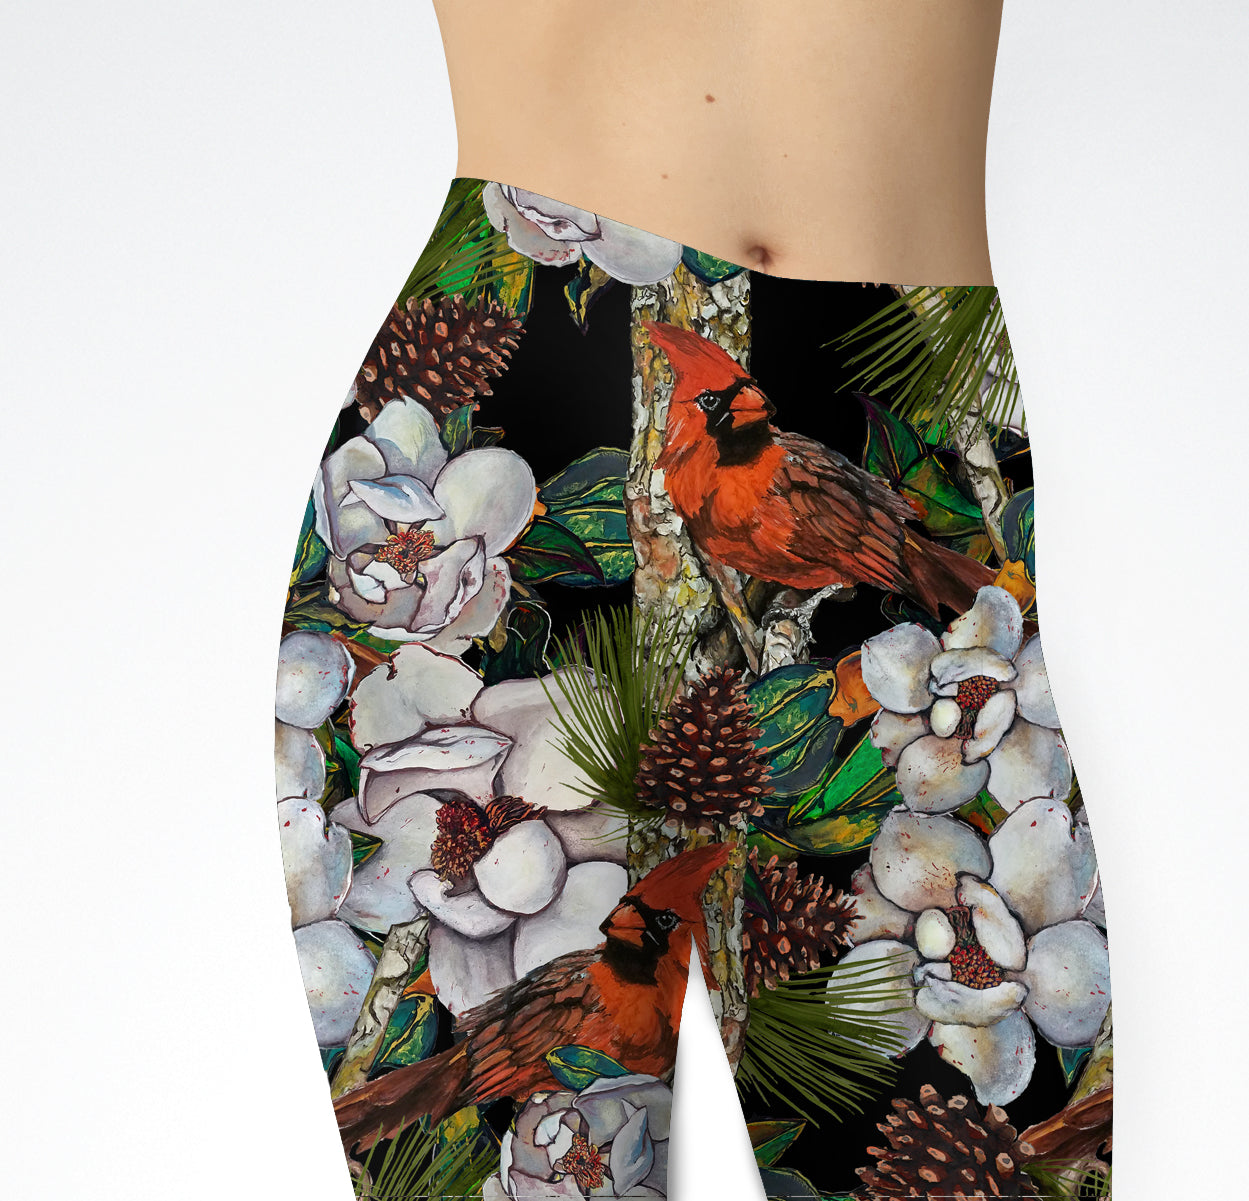 Festive Magnolia Leggings